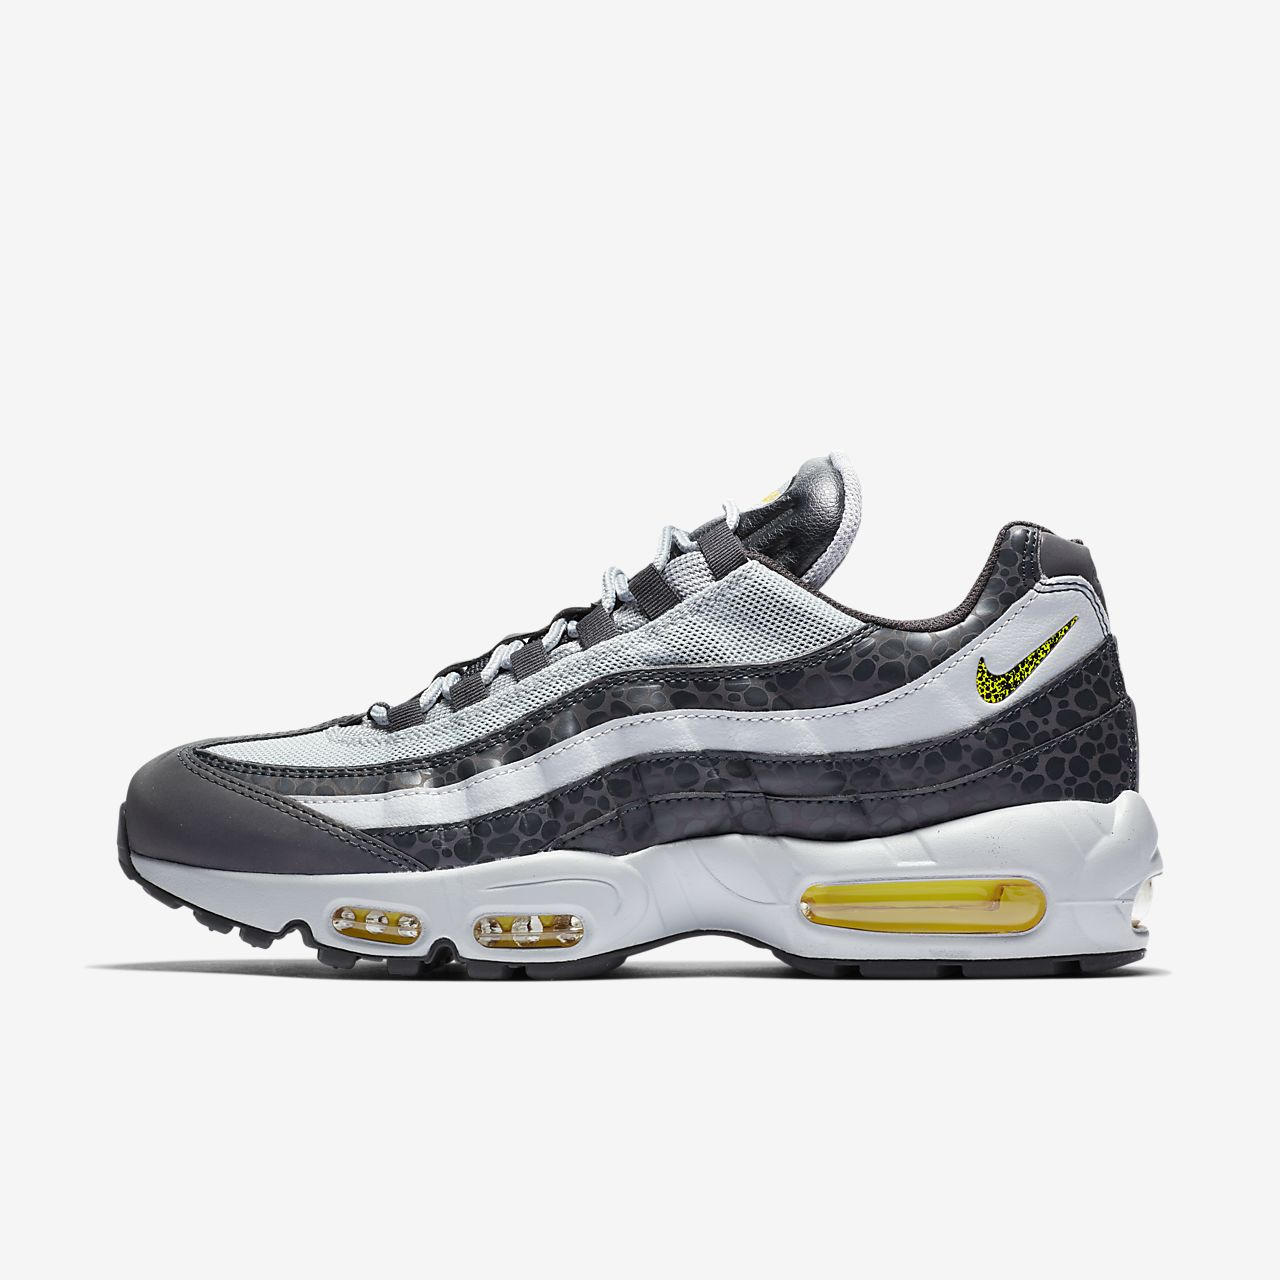 hot sale online 2f79a e133b ... Nike Air Max 95 SE Men s Shoe